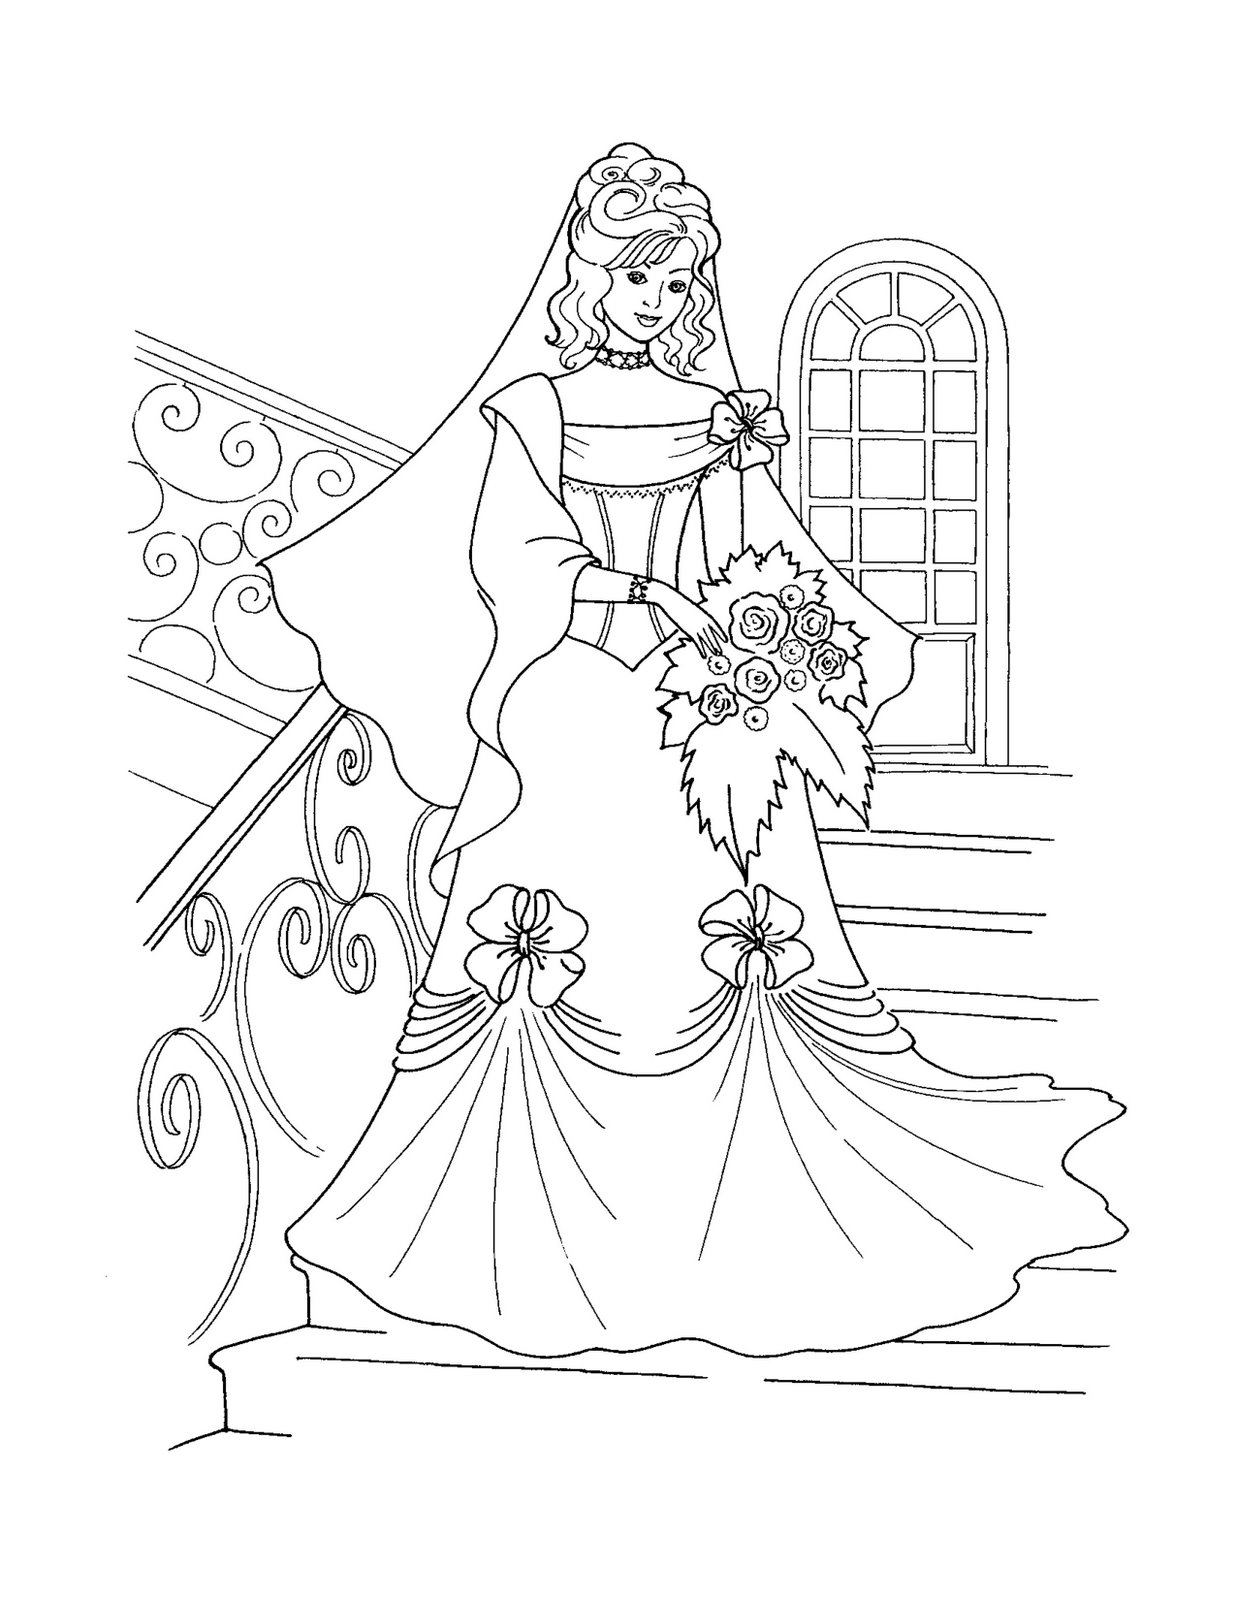 Free color pages princess - Disney Princess Castle Coloring Pages